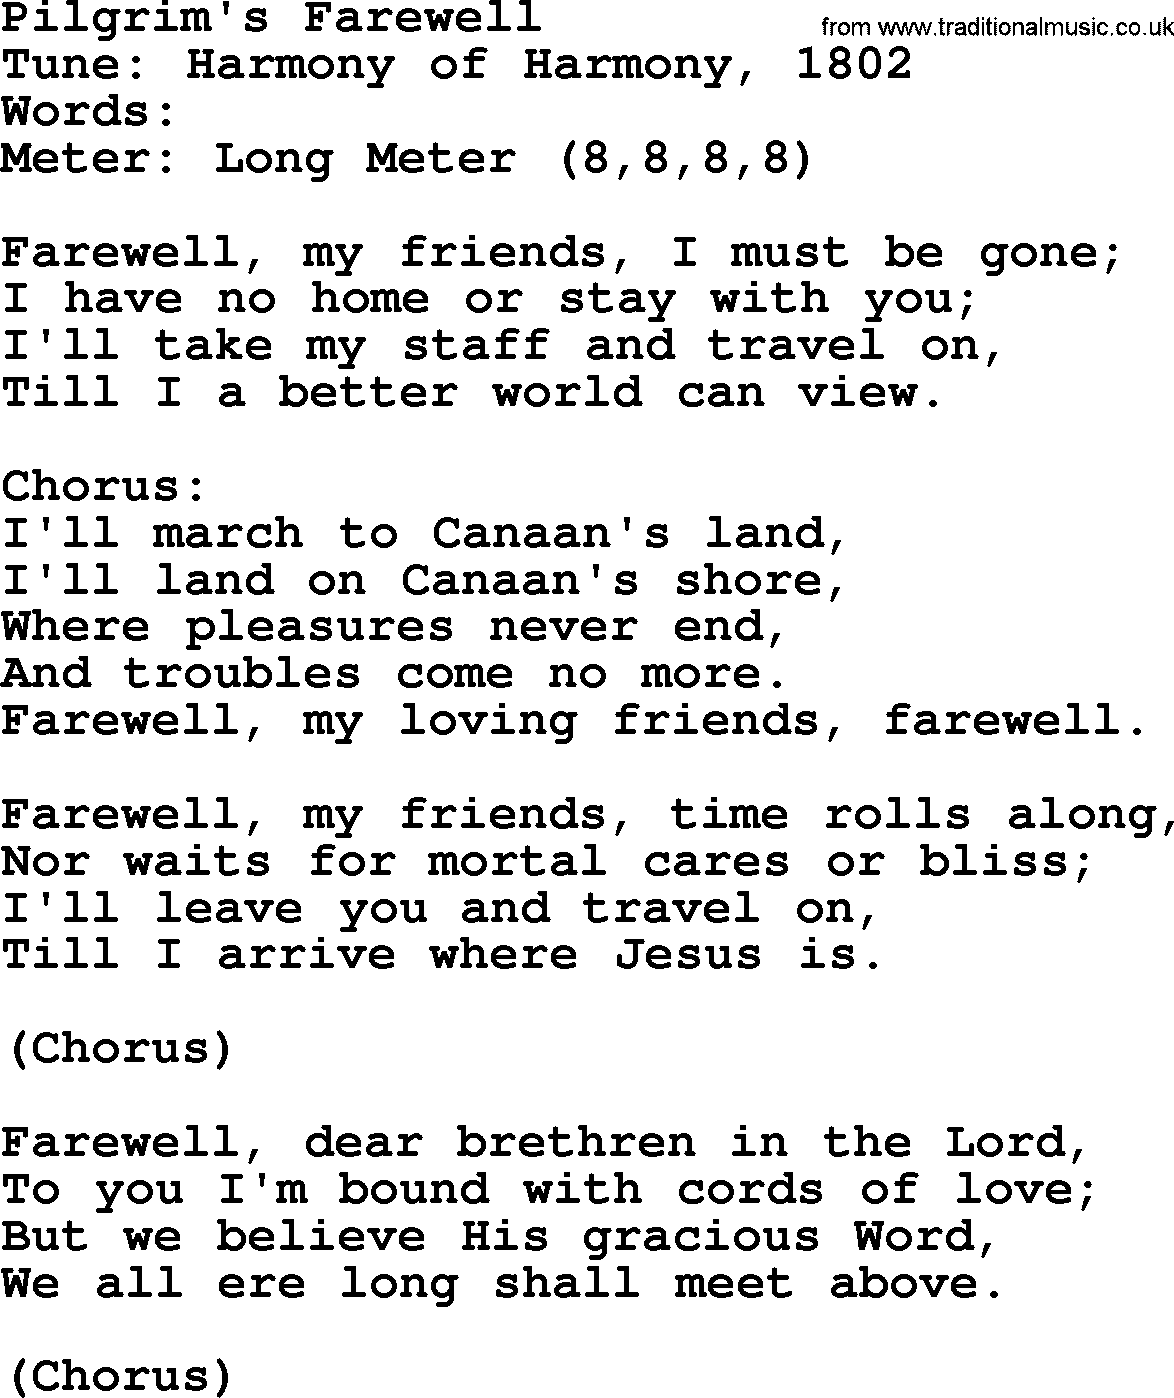 Sacred Harp Song: Pilgrim's Farewell - lyrics, and PDF